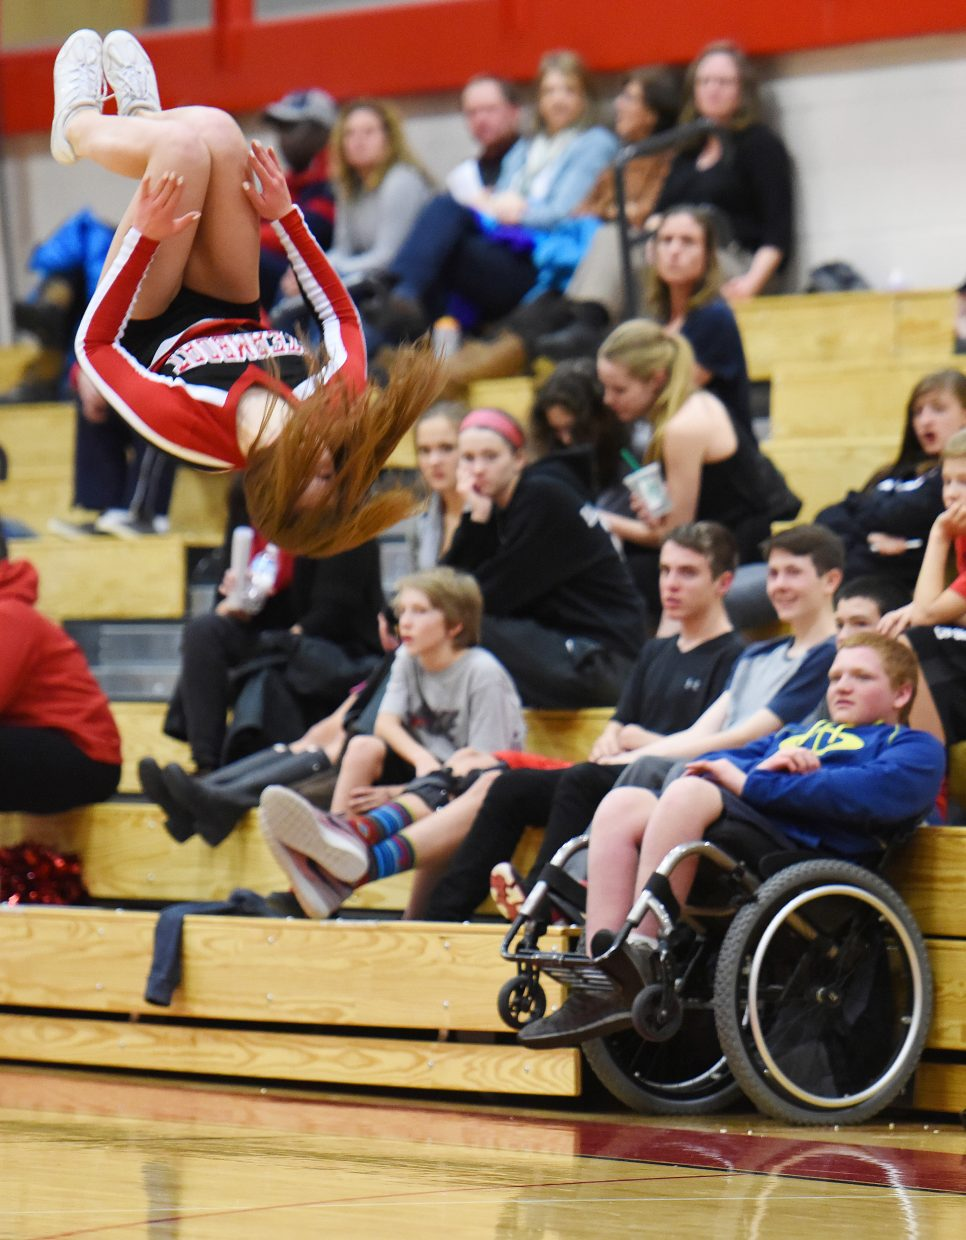 Steamboat sophomore cheerleader Taylor Rogers flips above the crowd Tuesday during the Steamboat Springs boys basketball game.